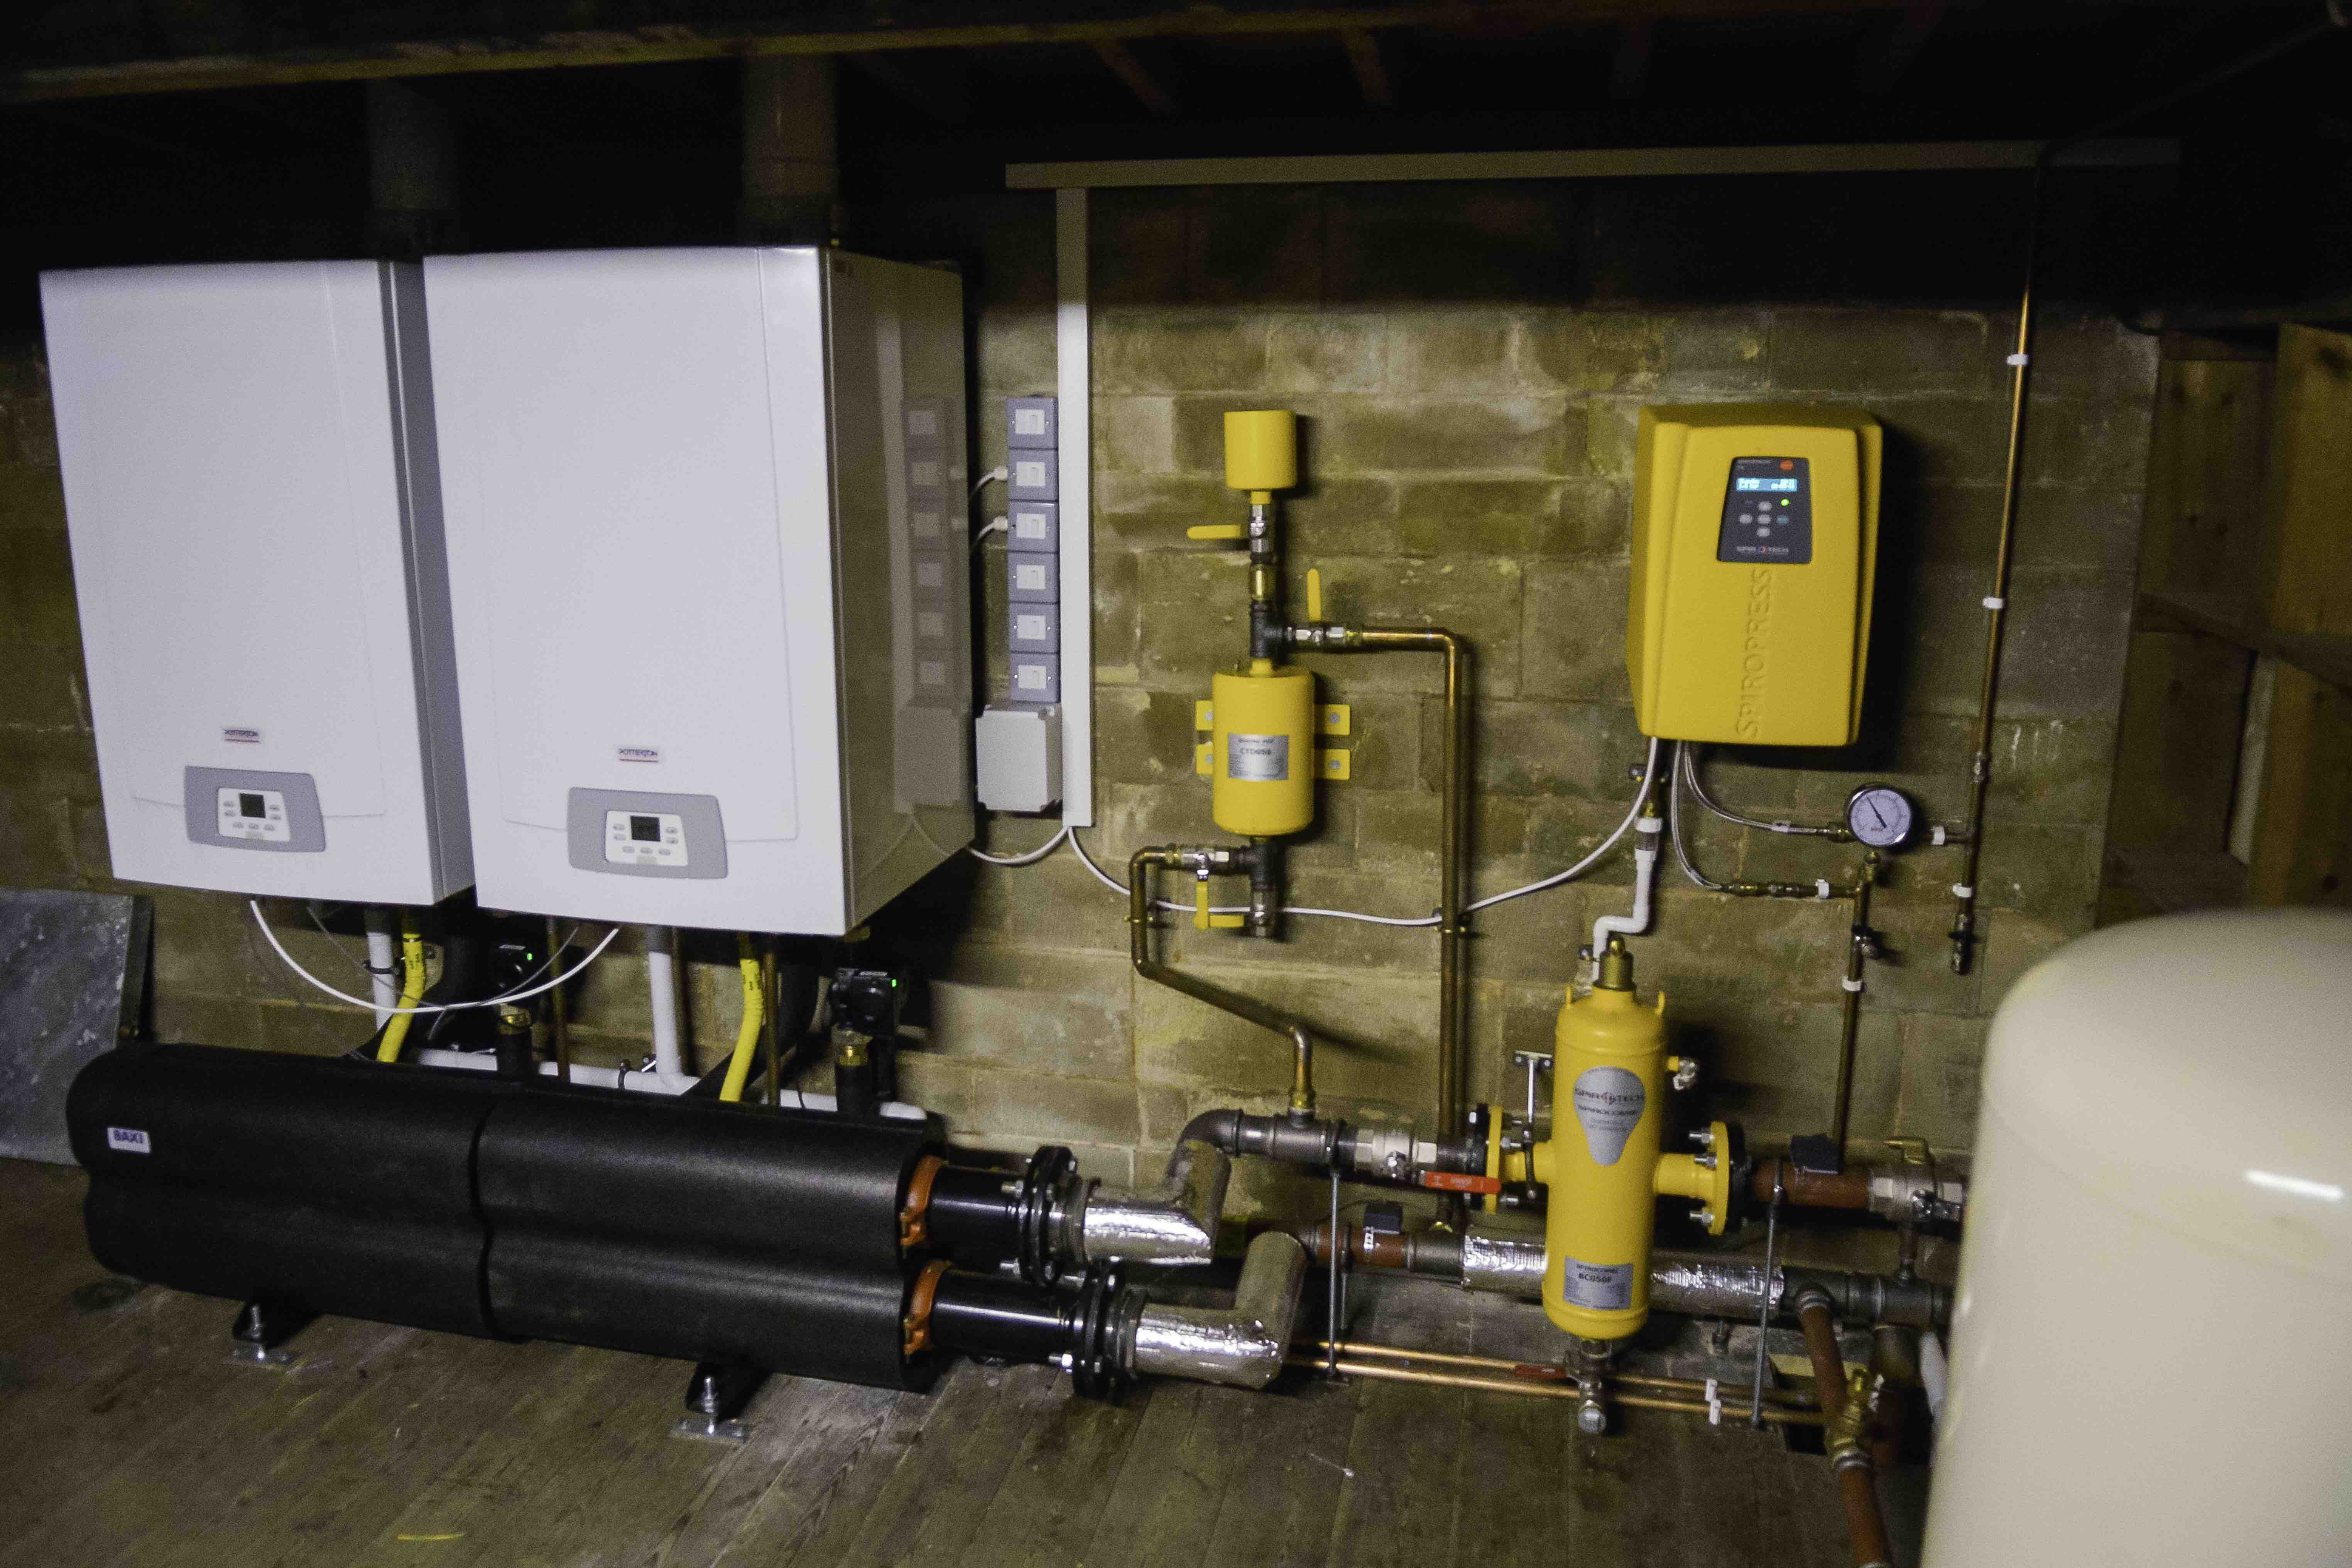 Cascade systems: why put up with inefficiencies?